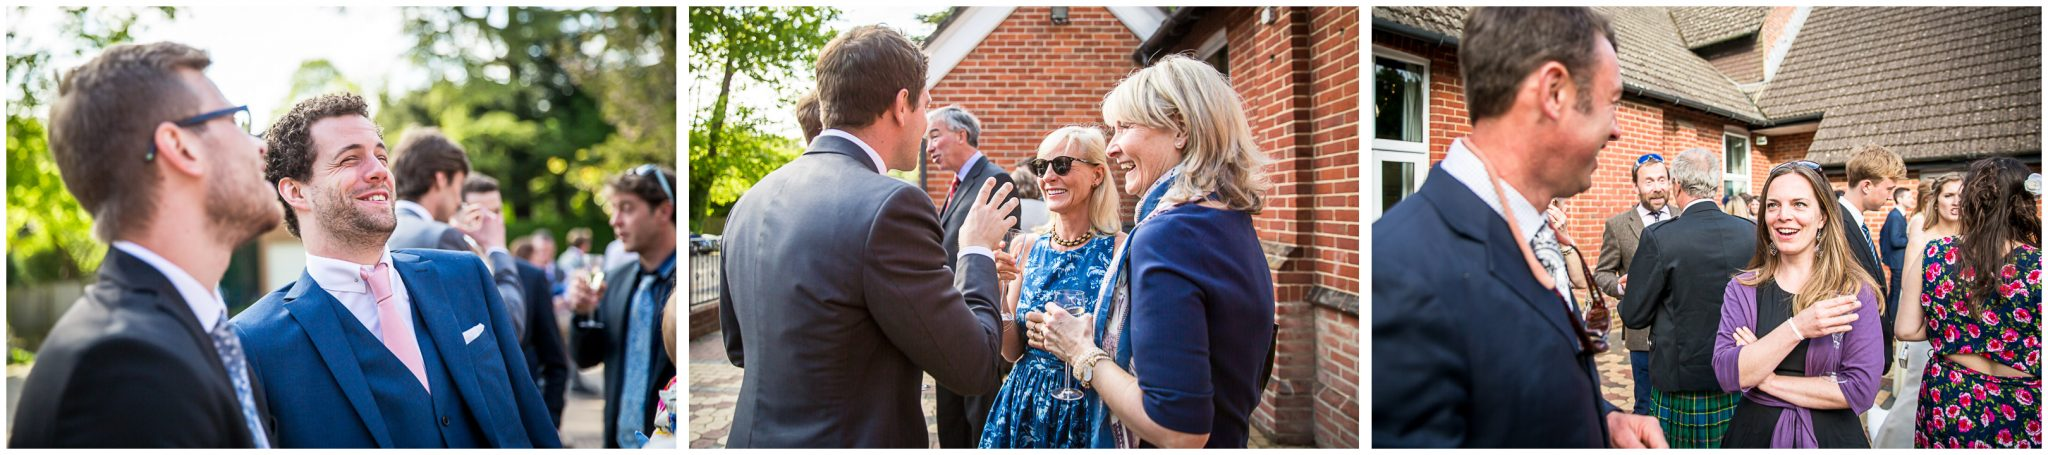 Wedding guests chatting outside village hall reception venue